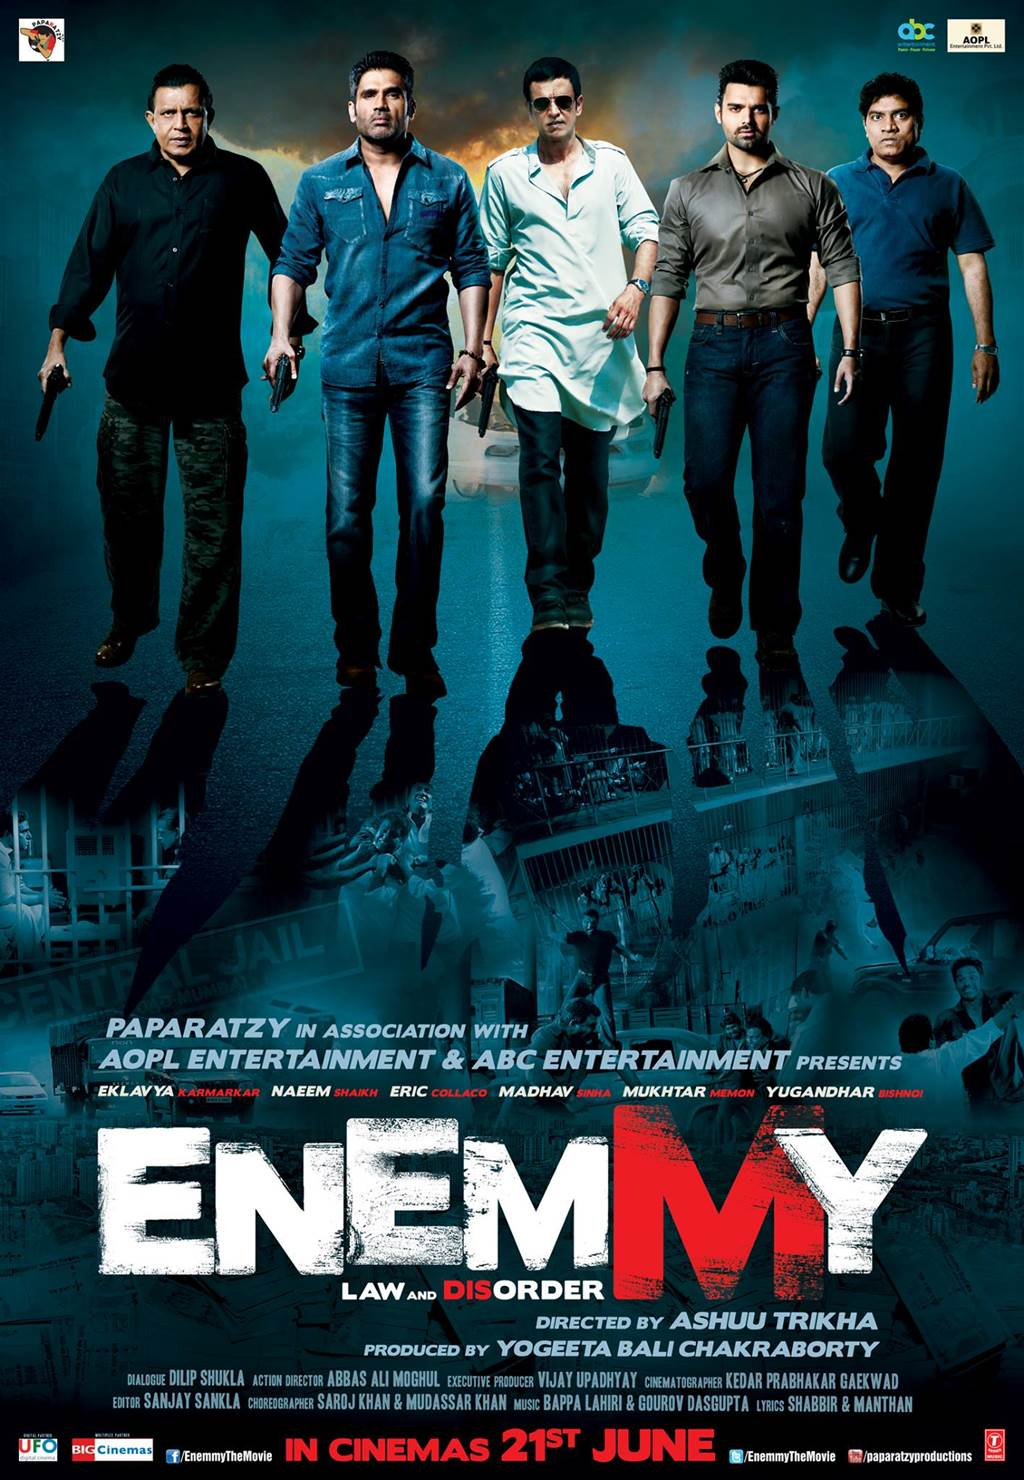 Download Film Enemy Indowebster | Film Baru 2013